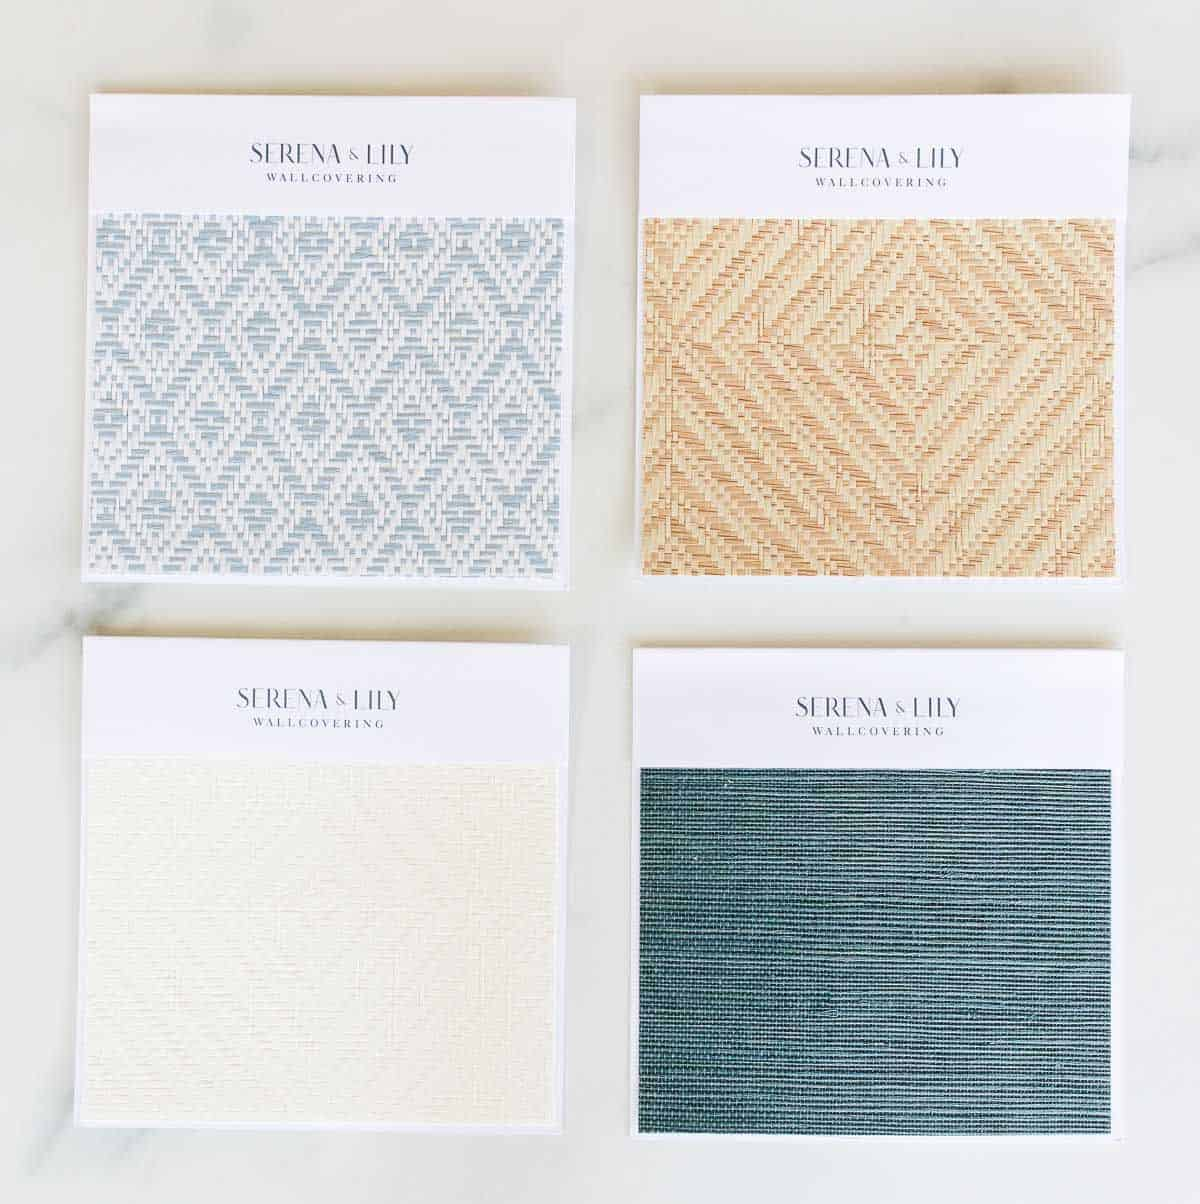 Four wallpaper samples from Serena and Lily laid out on a marble surface.